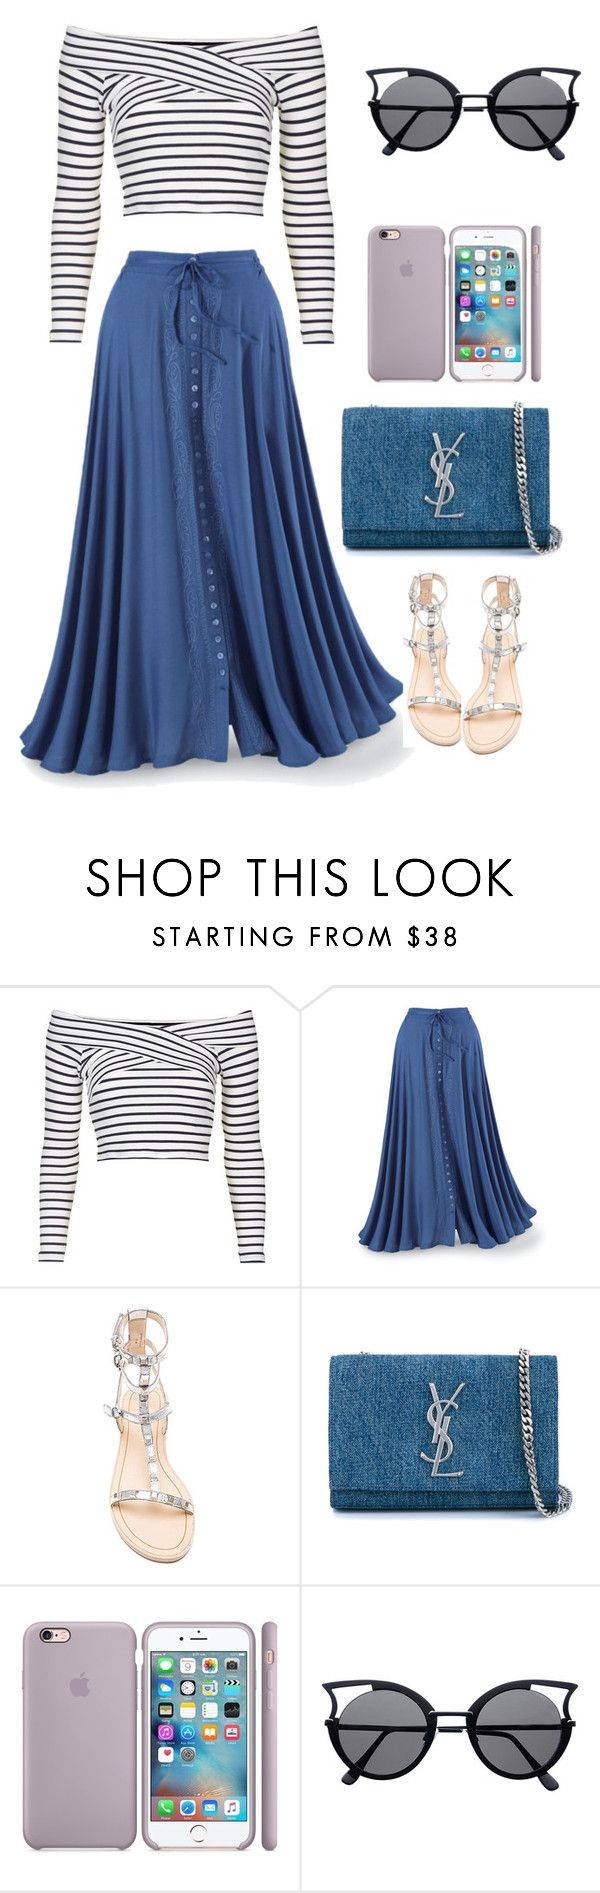 """Полосатая рубашка"" by natalia-127 ❤ liked on Polyvore featuring Topshop, Rebecca Minkoff and Yves Saint Laurent"